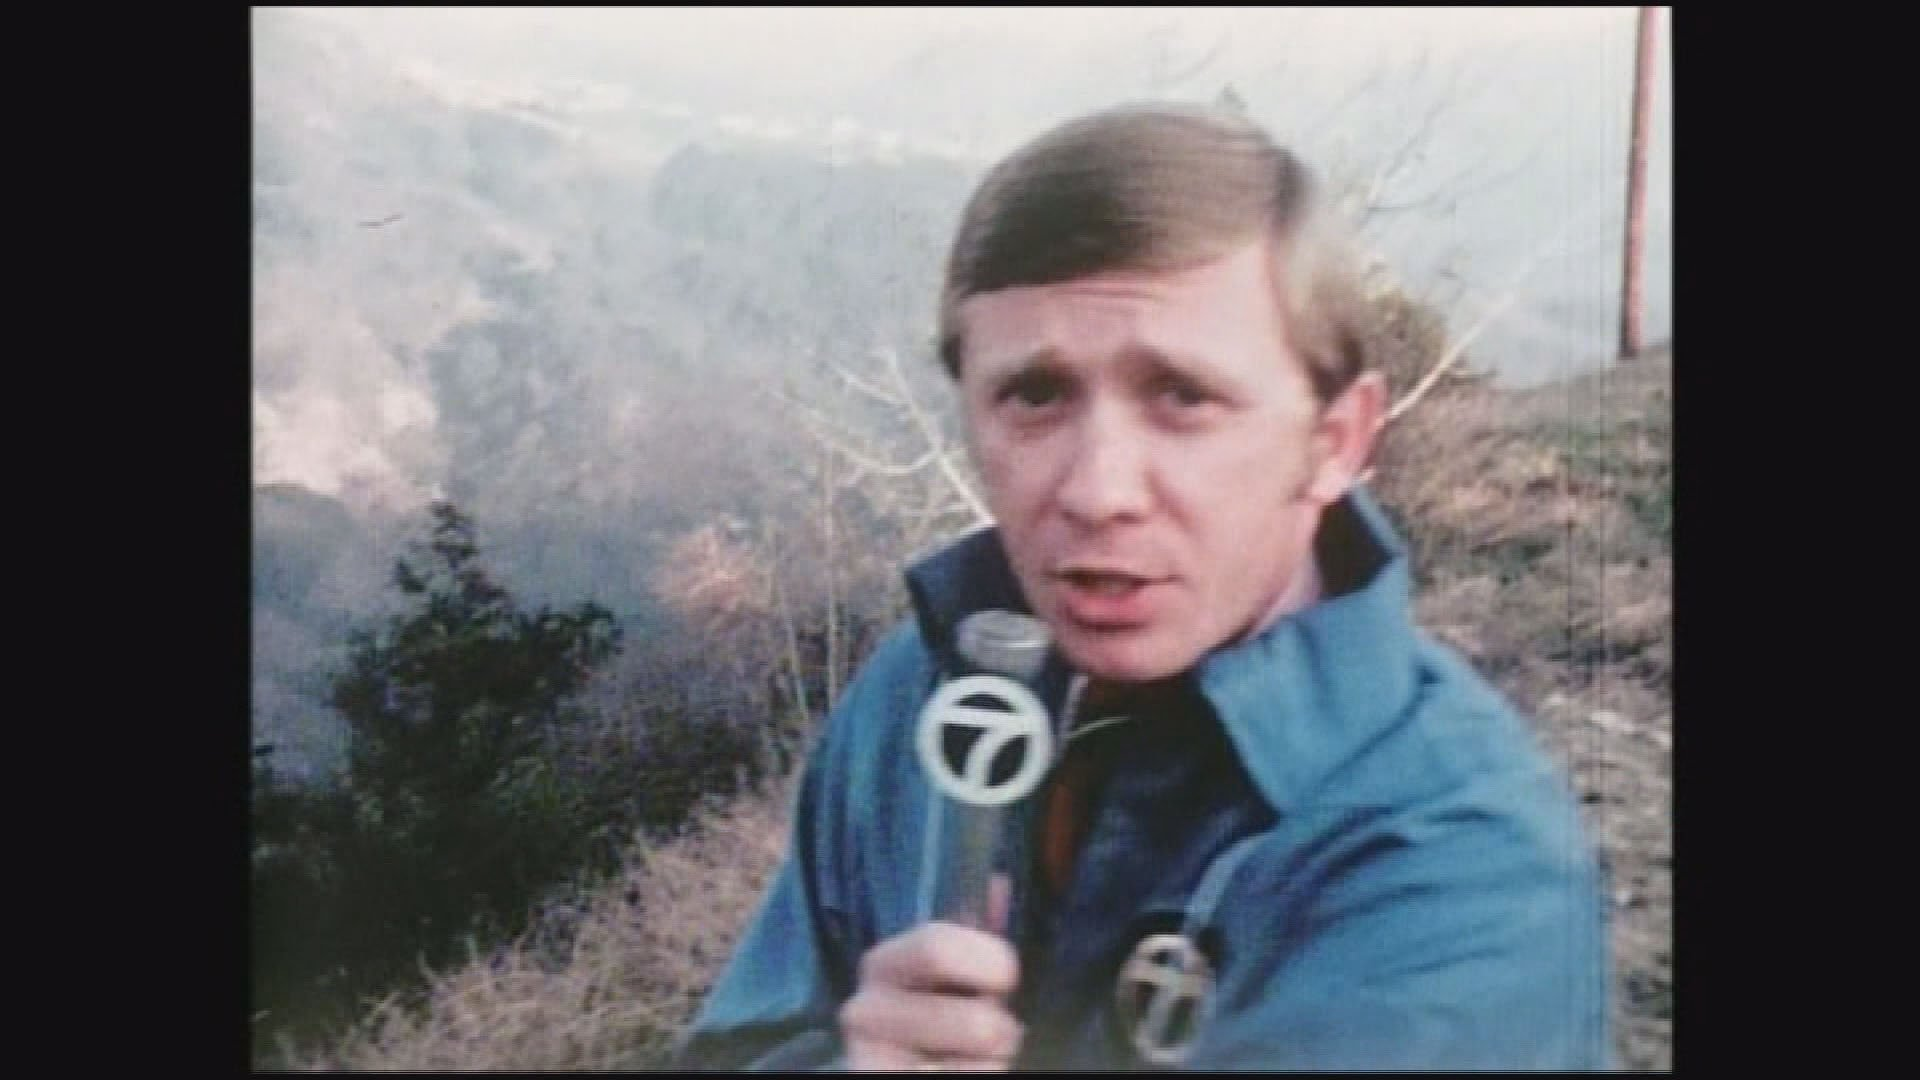 Al Wiman helped Los Angeles Police during the Manson investigation (Credit: KMOV)